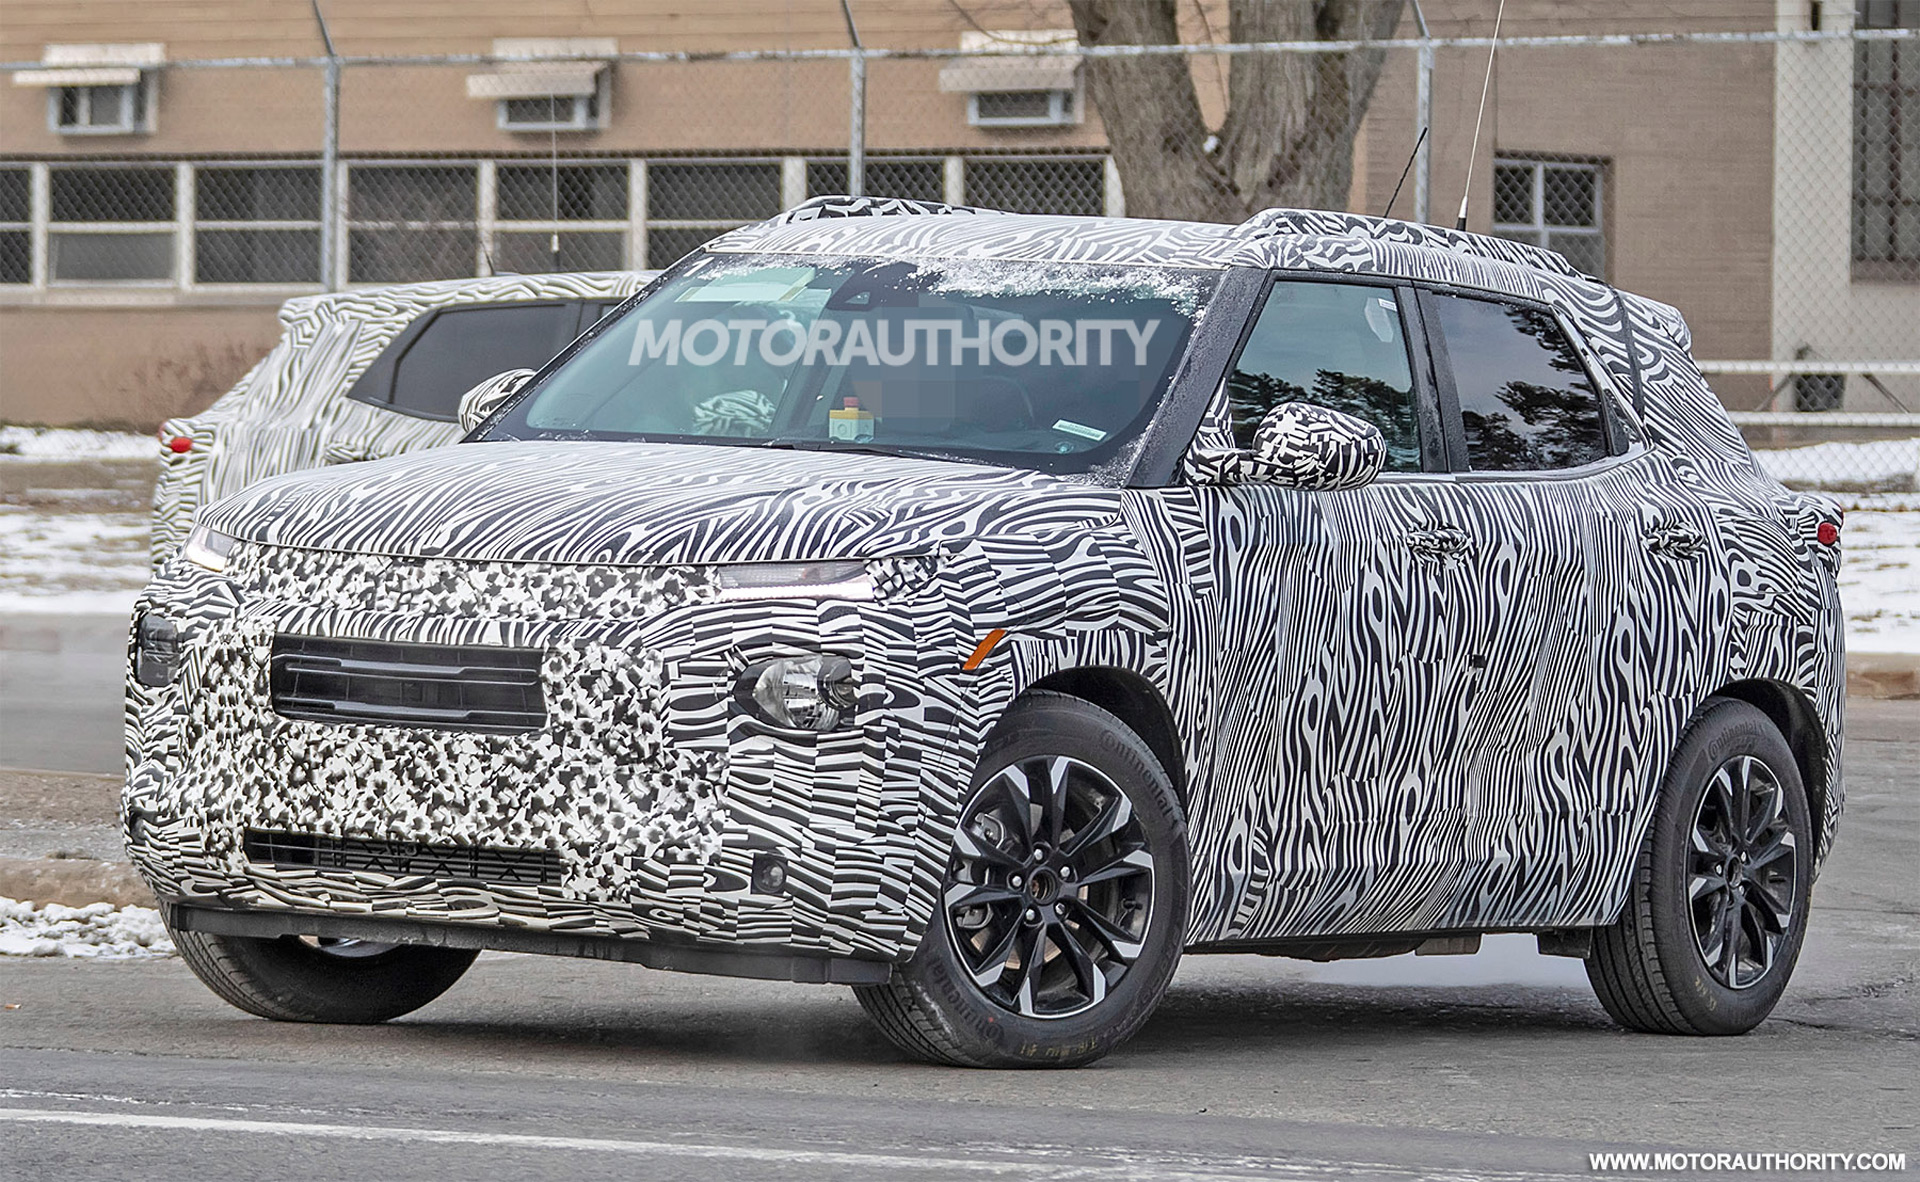 2020 Chevrolet Trailblazer Return And Release Date >> 2020 Chevrolet Trailblazer Spy Shots